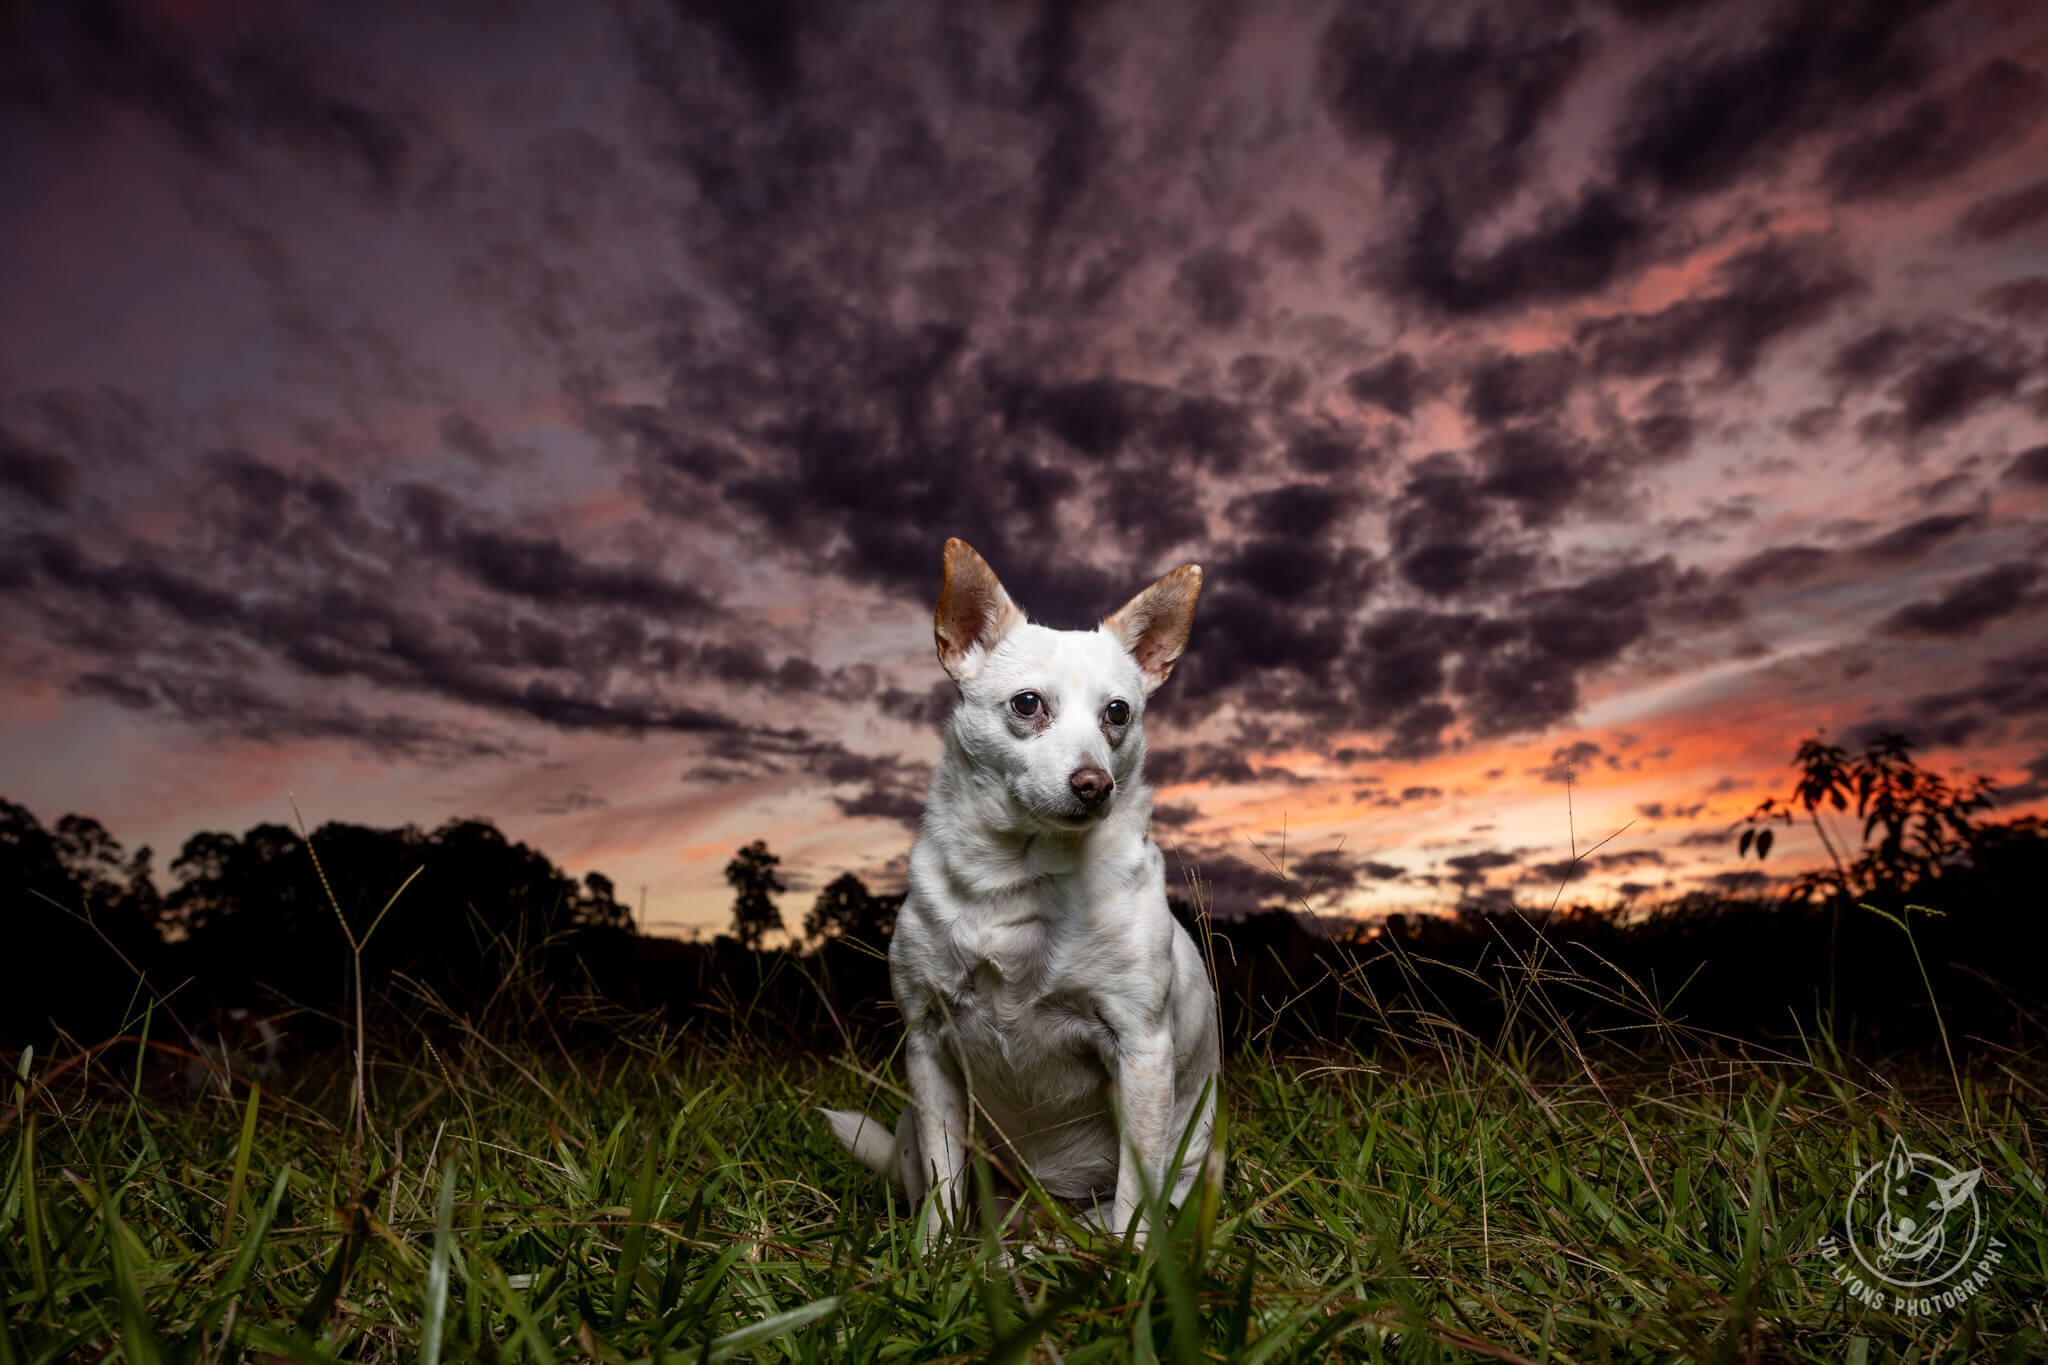 Leading Lines with Dogs and a Sunset on the farm in Wootton, NSW